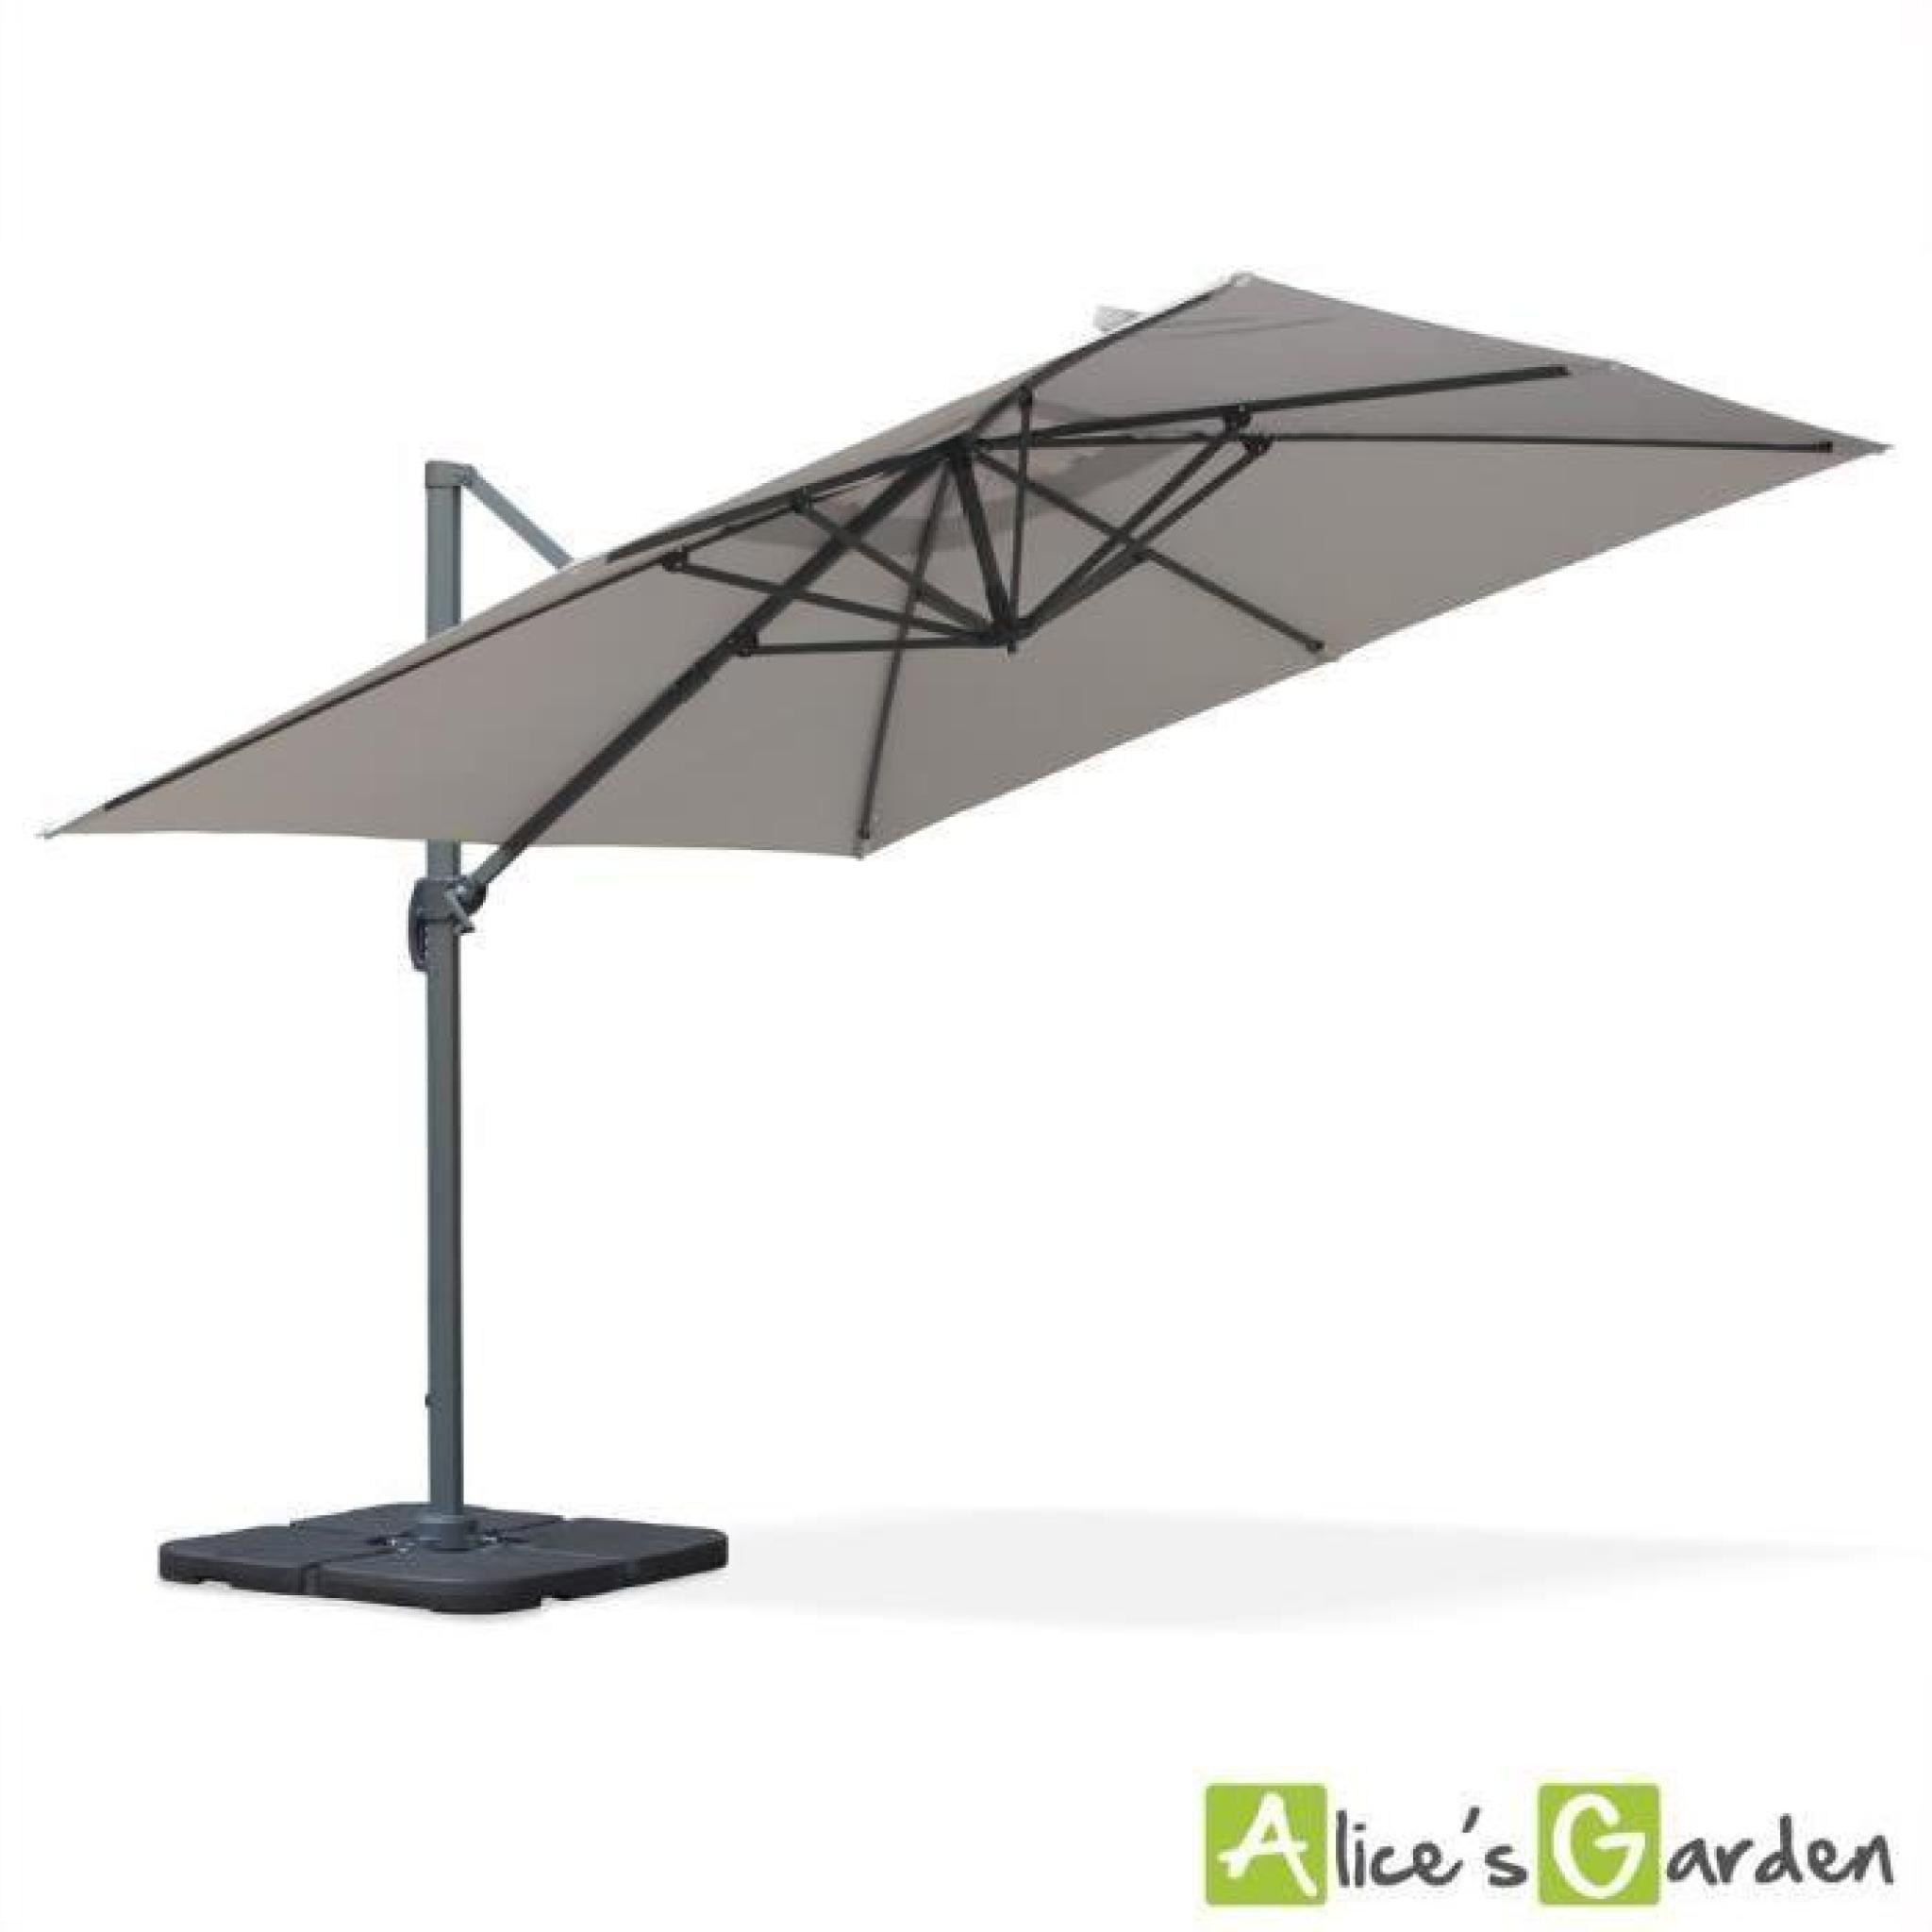 parasol d port carr 3x3m haut de gamme excentr inclinable rotatif 360 gris clair achat. Black Bedroom Furniture Sets. Home Design Ideas